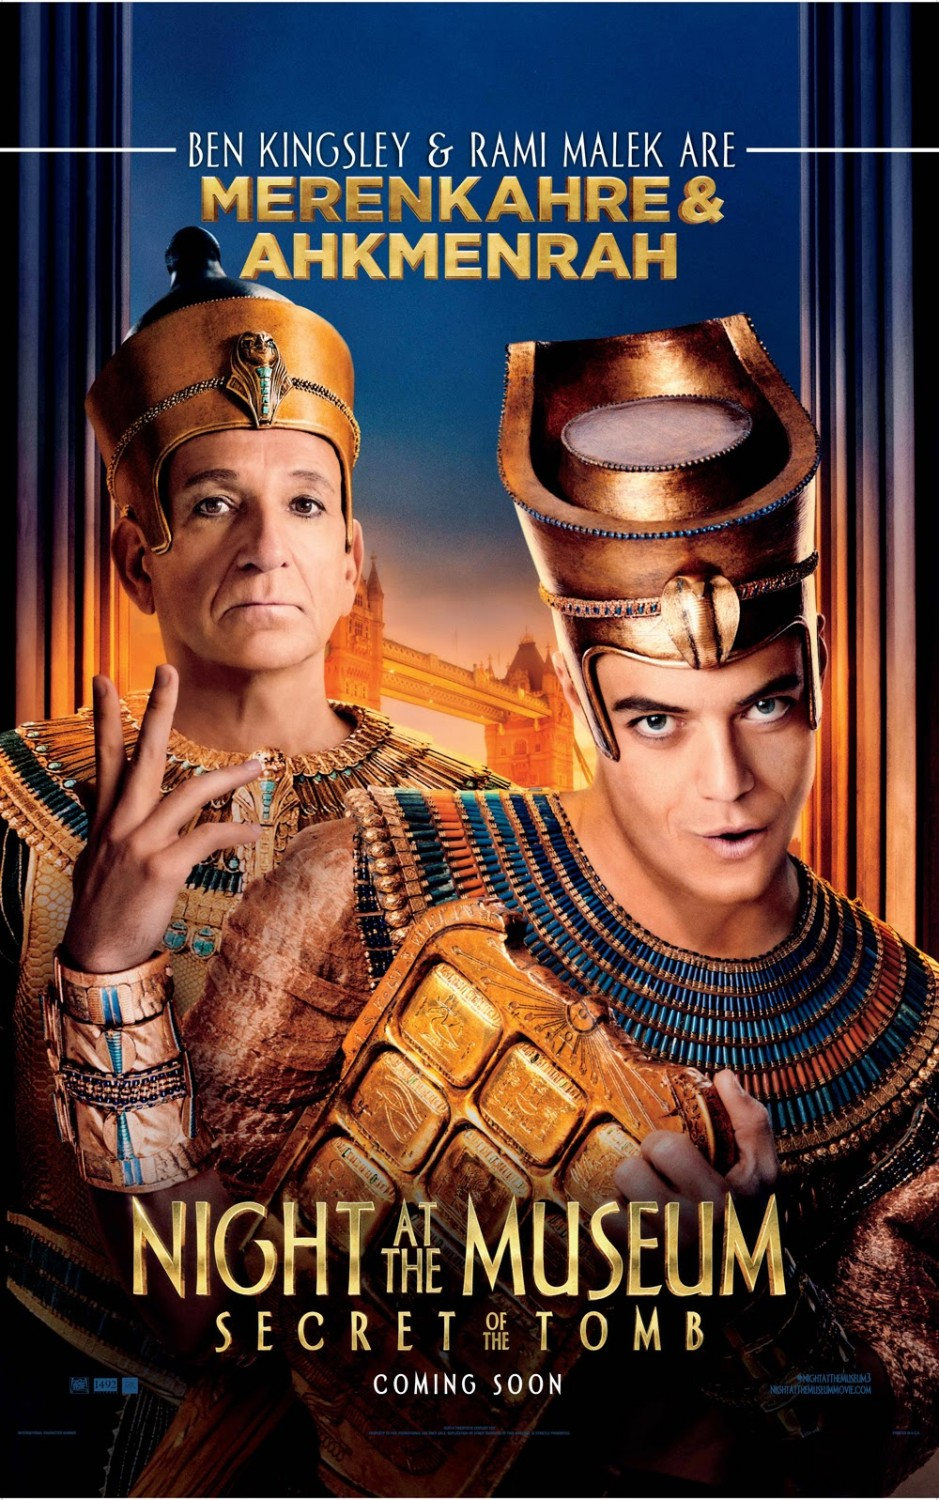 Night at the Museum Secret of the Tomb-Official Poster-17NOVEMBRO2014-02